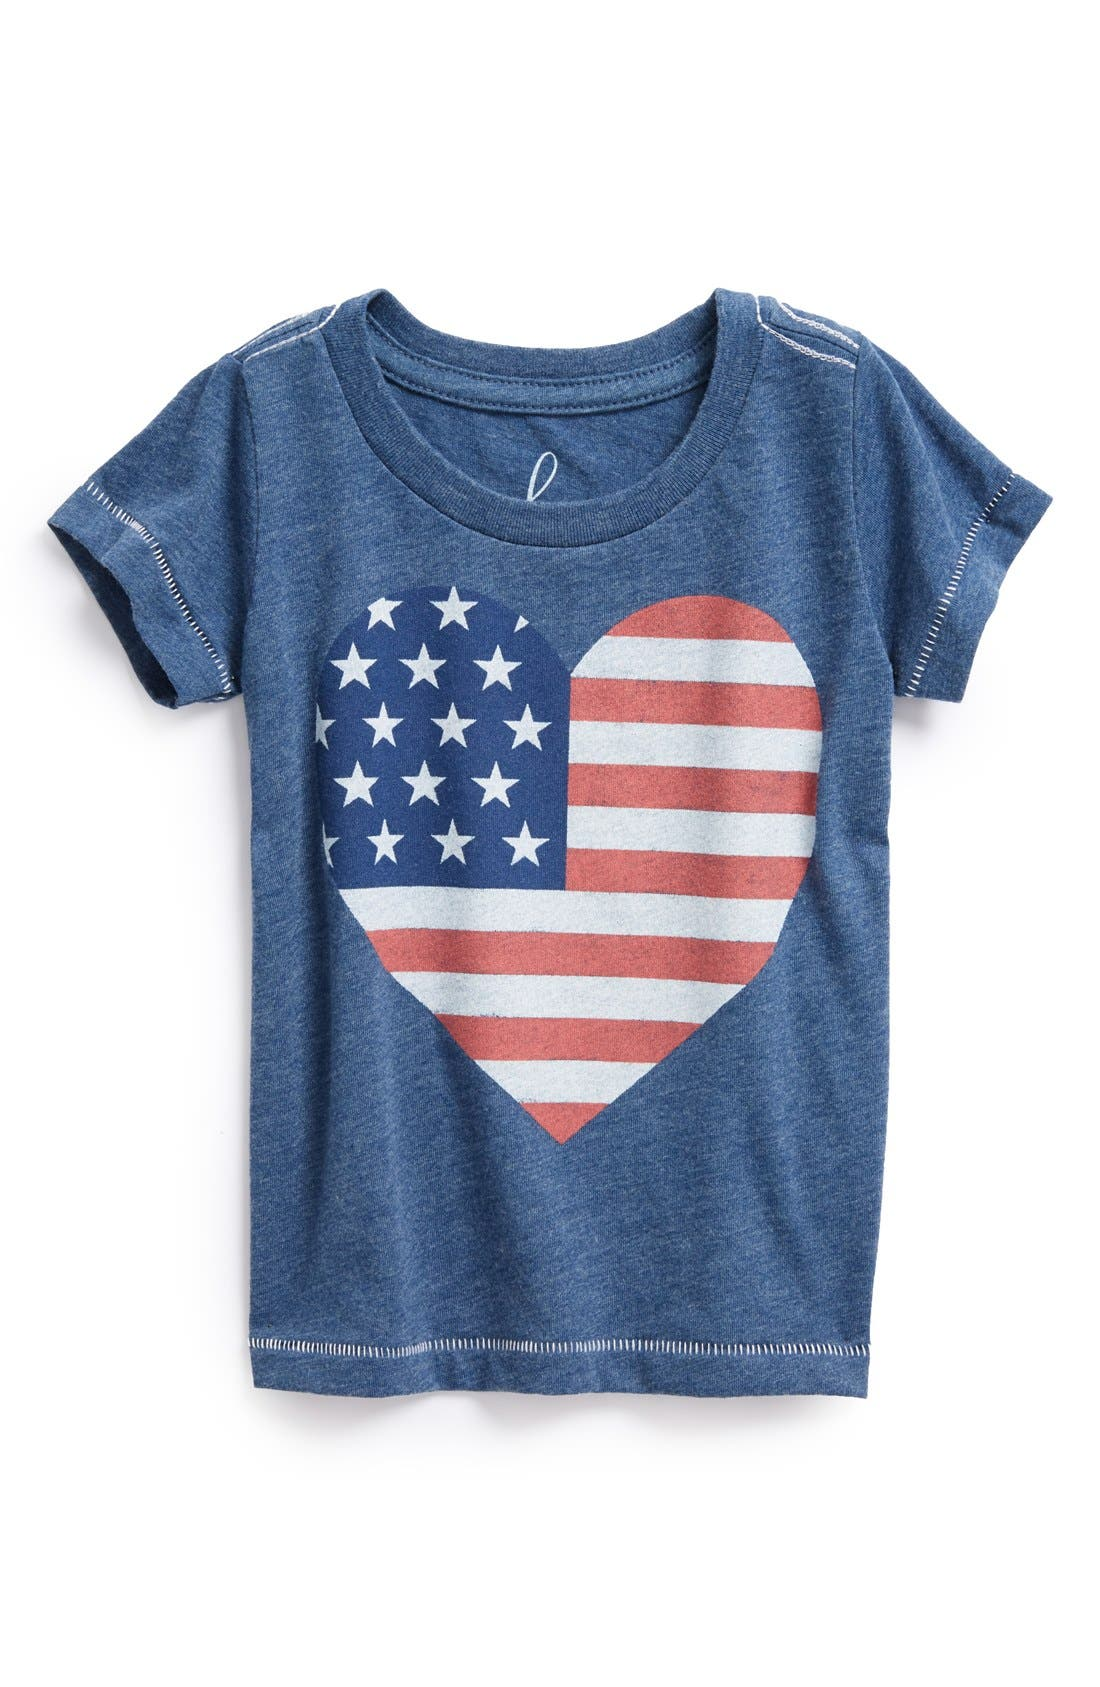 Alternate Image 1 Selected - Peek 'Love America' Heart American Flag Screenprint Tee (Baby Girls)